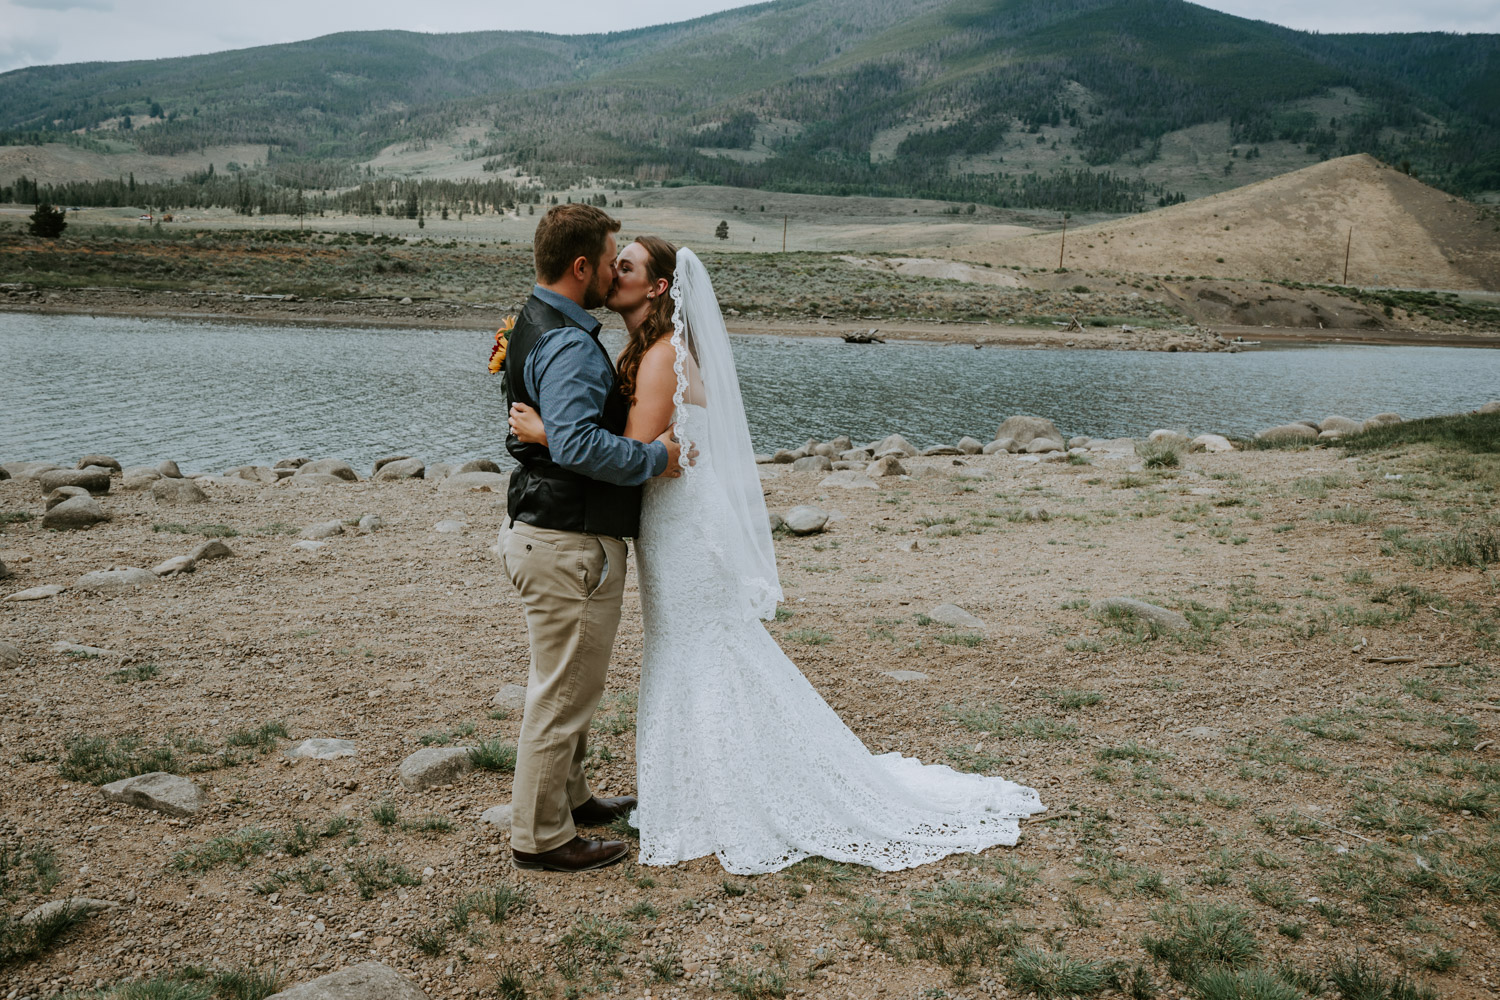 Colorado Wedding Photographer, Denver Botanic Gardens Wedding, Intimate Wedding, Windy Point Campground, lake dillon, elopement photographer, first look, kiss